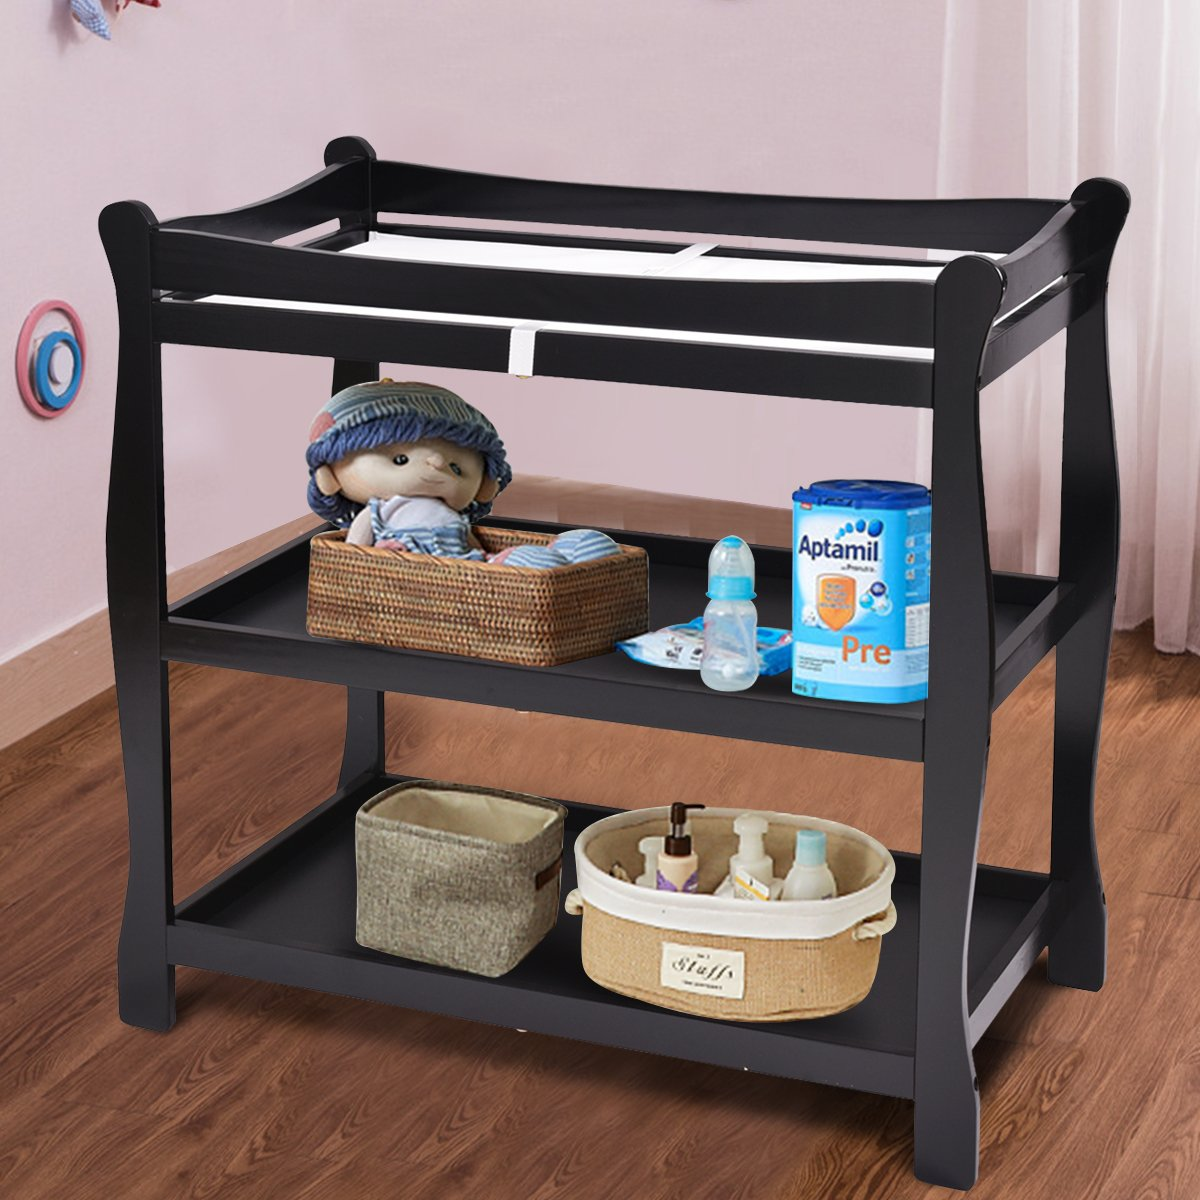 Newborn Nursery Station with Pad Infant Diaper Changing Table Organization Espresso Costzon Baby Changing Table Sleigh Style Nursery Dresser Changing Table with Hamper// 2 Fixed Shelves